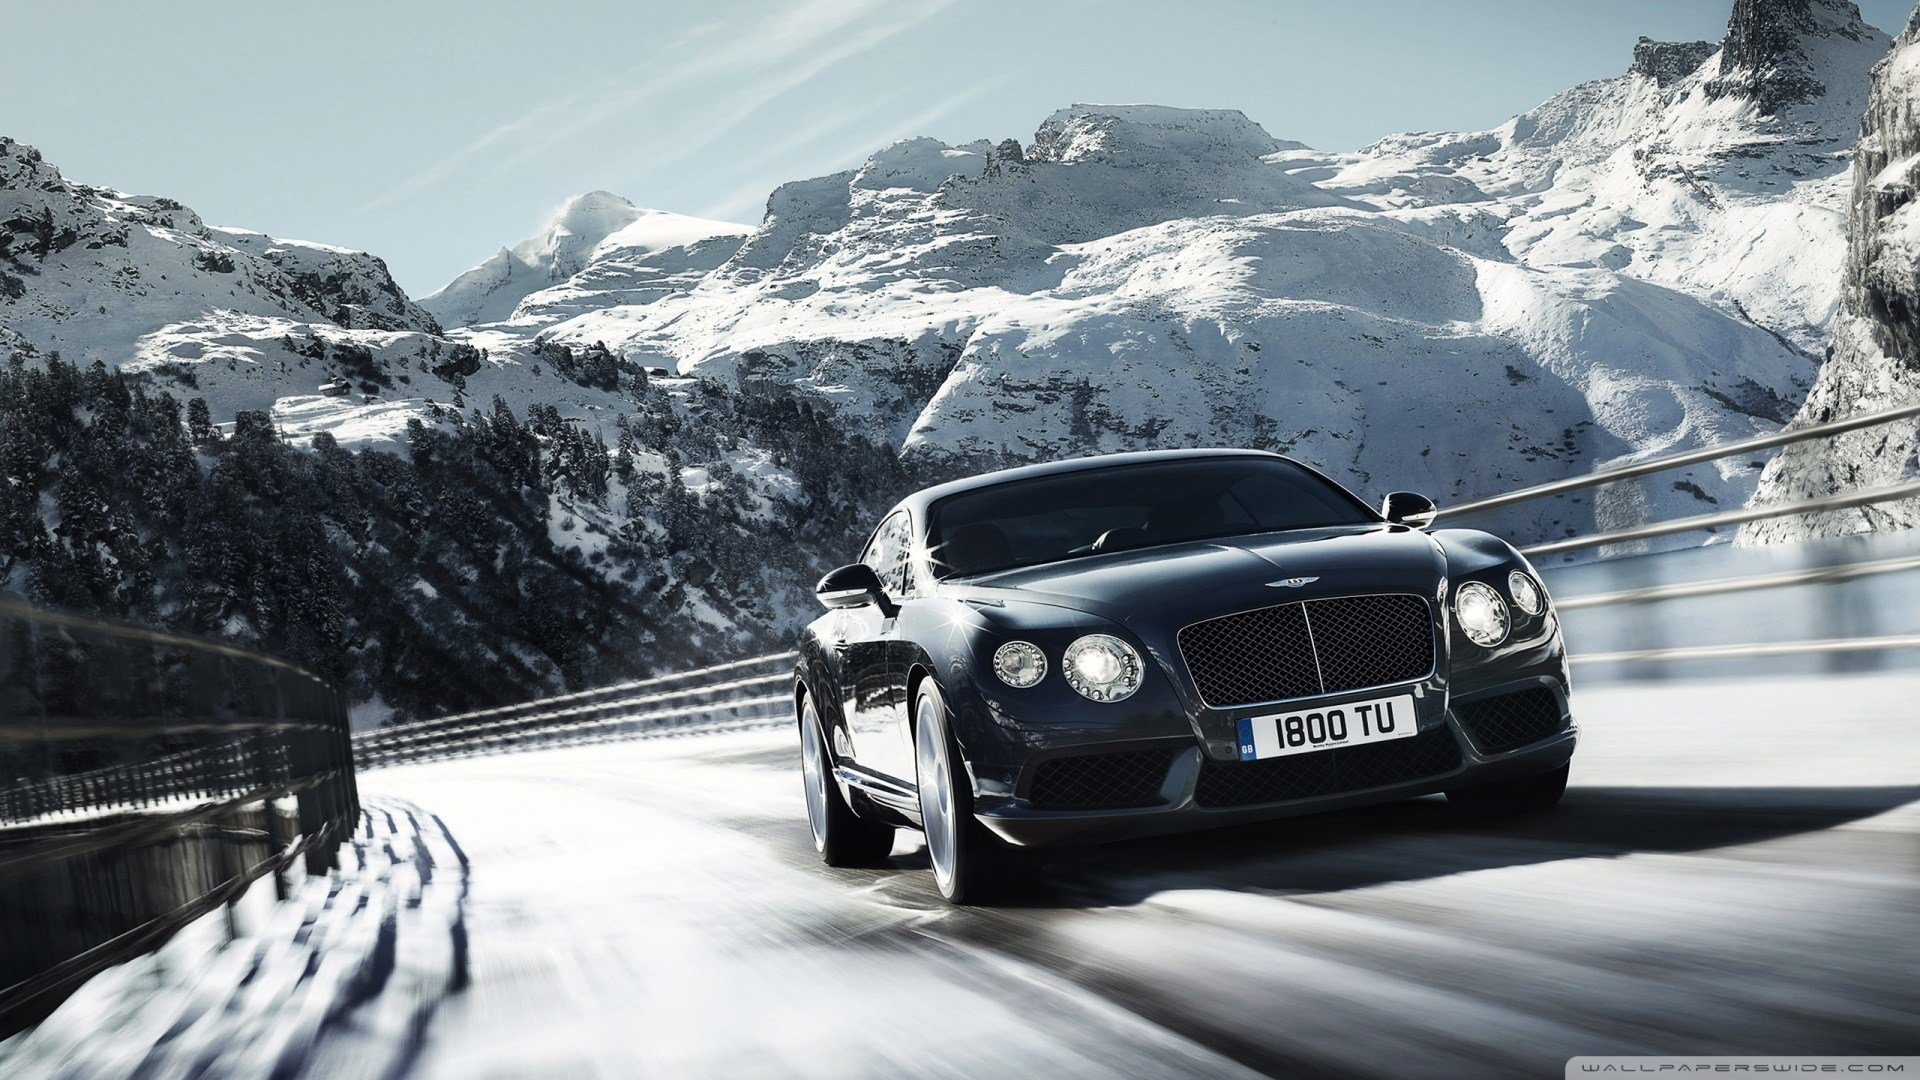 Latest 2012 Bentley Continental V8 Winter Mountain 4K Hd Free Download